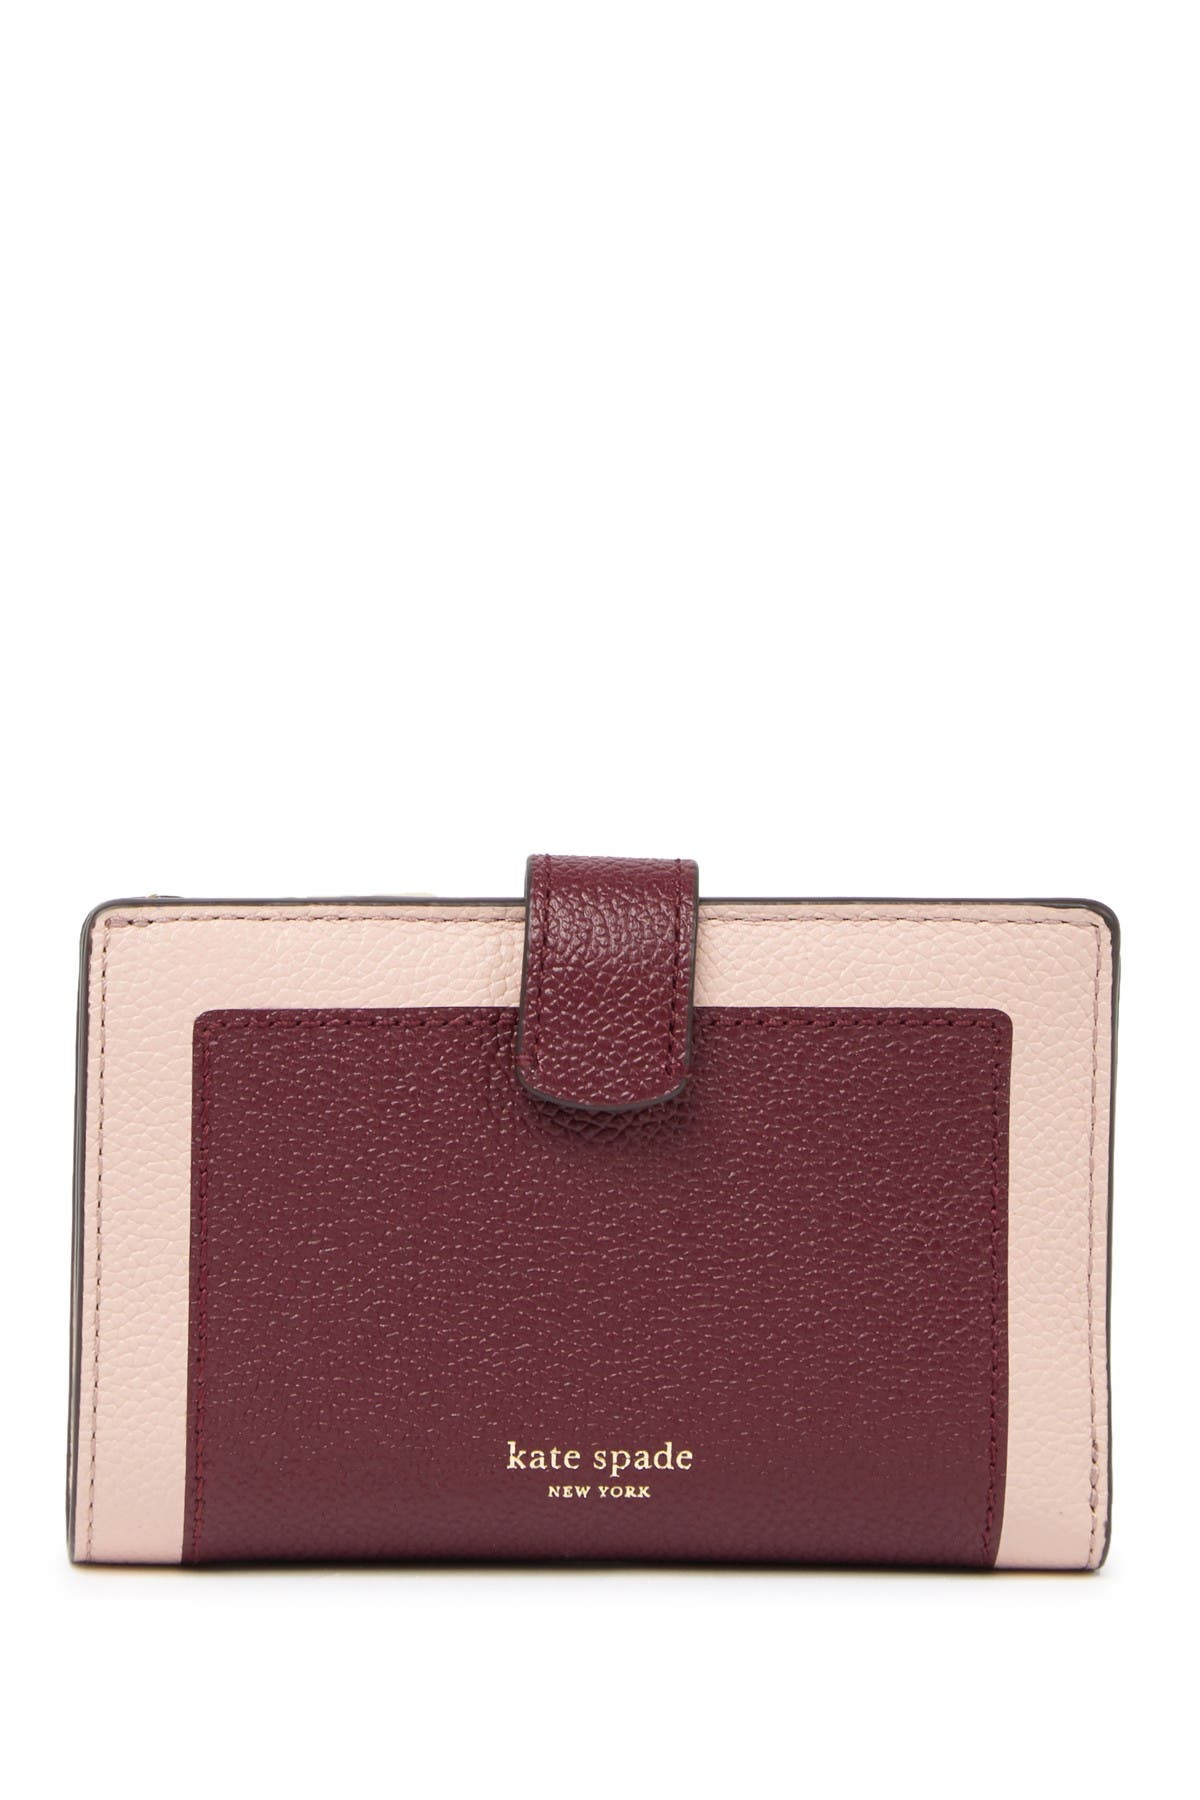 Image of kate spade new york margaux medium leather bifold wallet